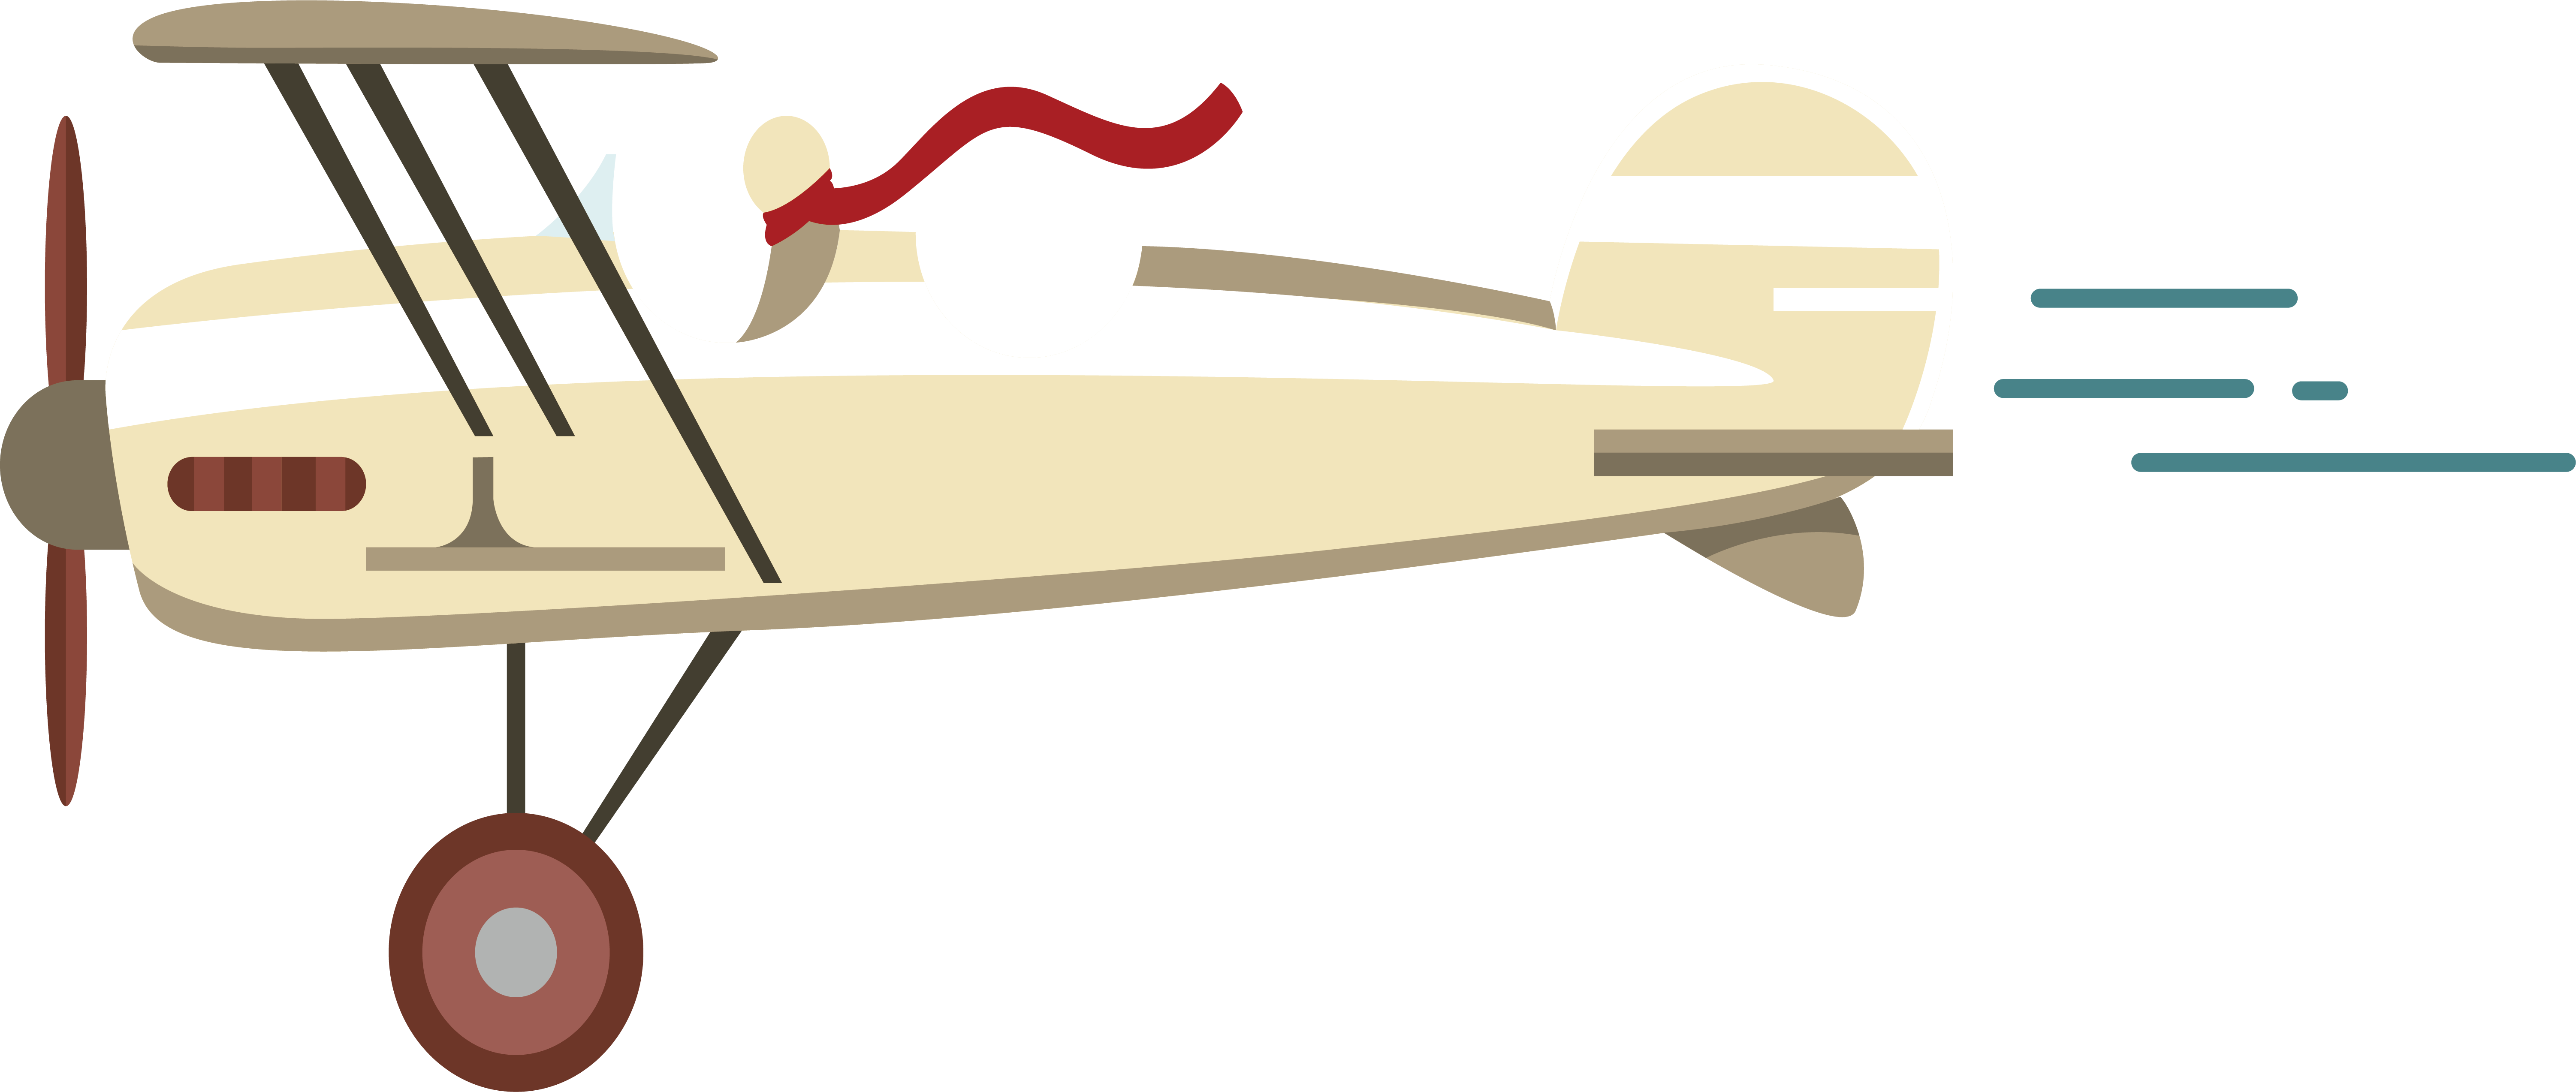 Free Free Airplane Clipart, Download Free Clip Art, Free Clip Art on Clipart  Library